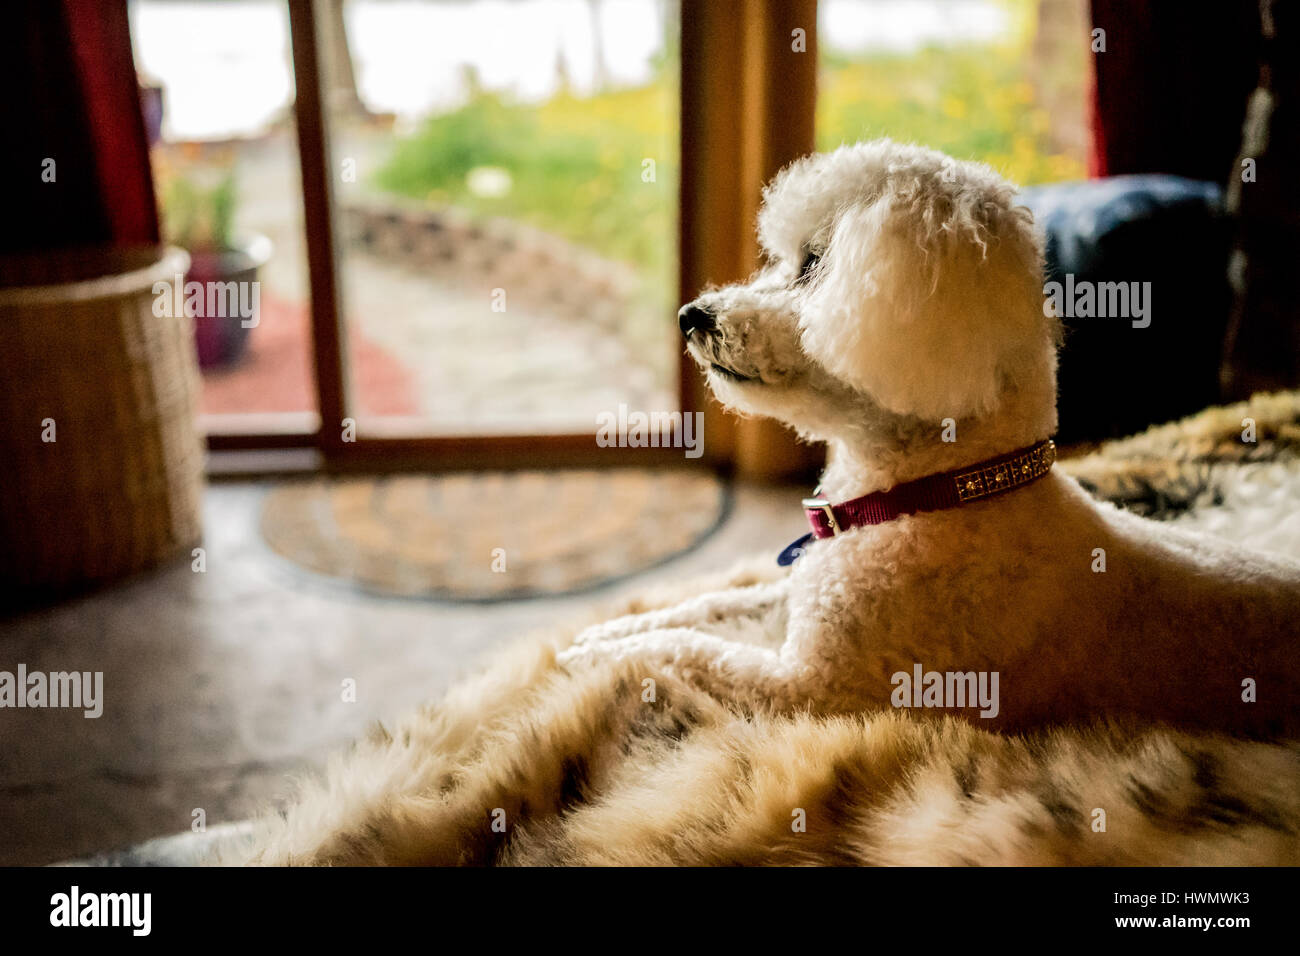 A small dog (Scientific name: Canis lupus familiaris) sits contentedly on a fur rug in a naturally lit room Stock Photo